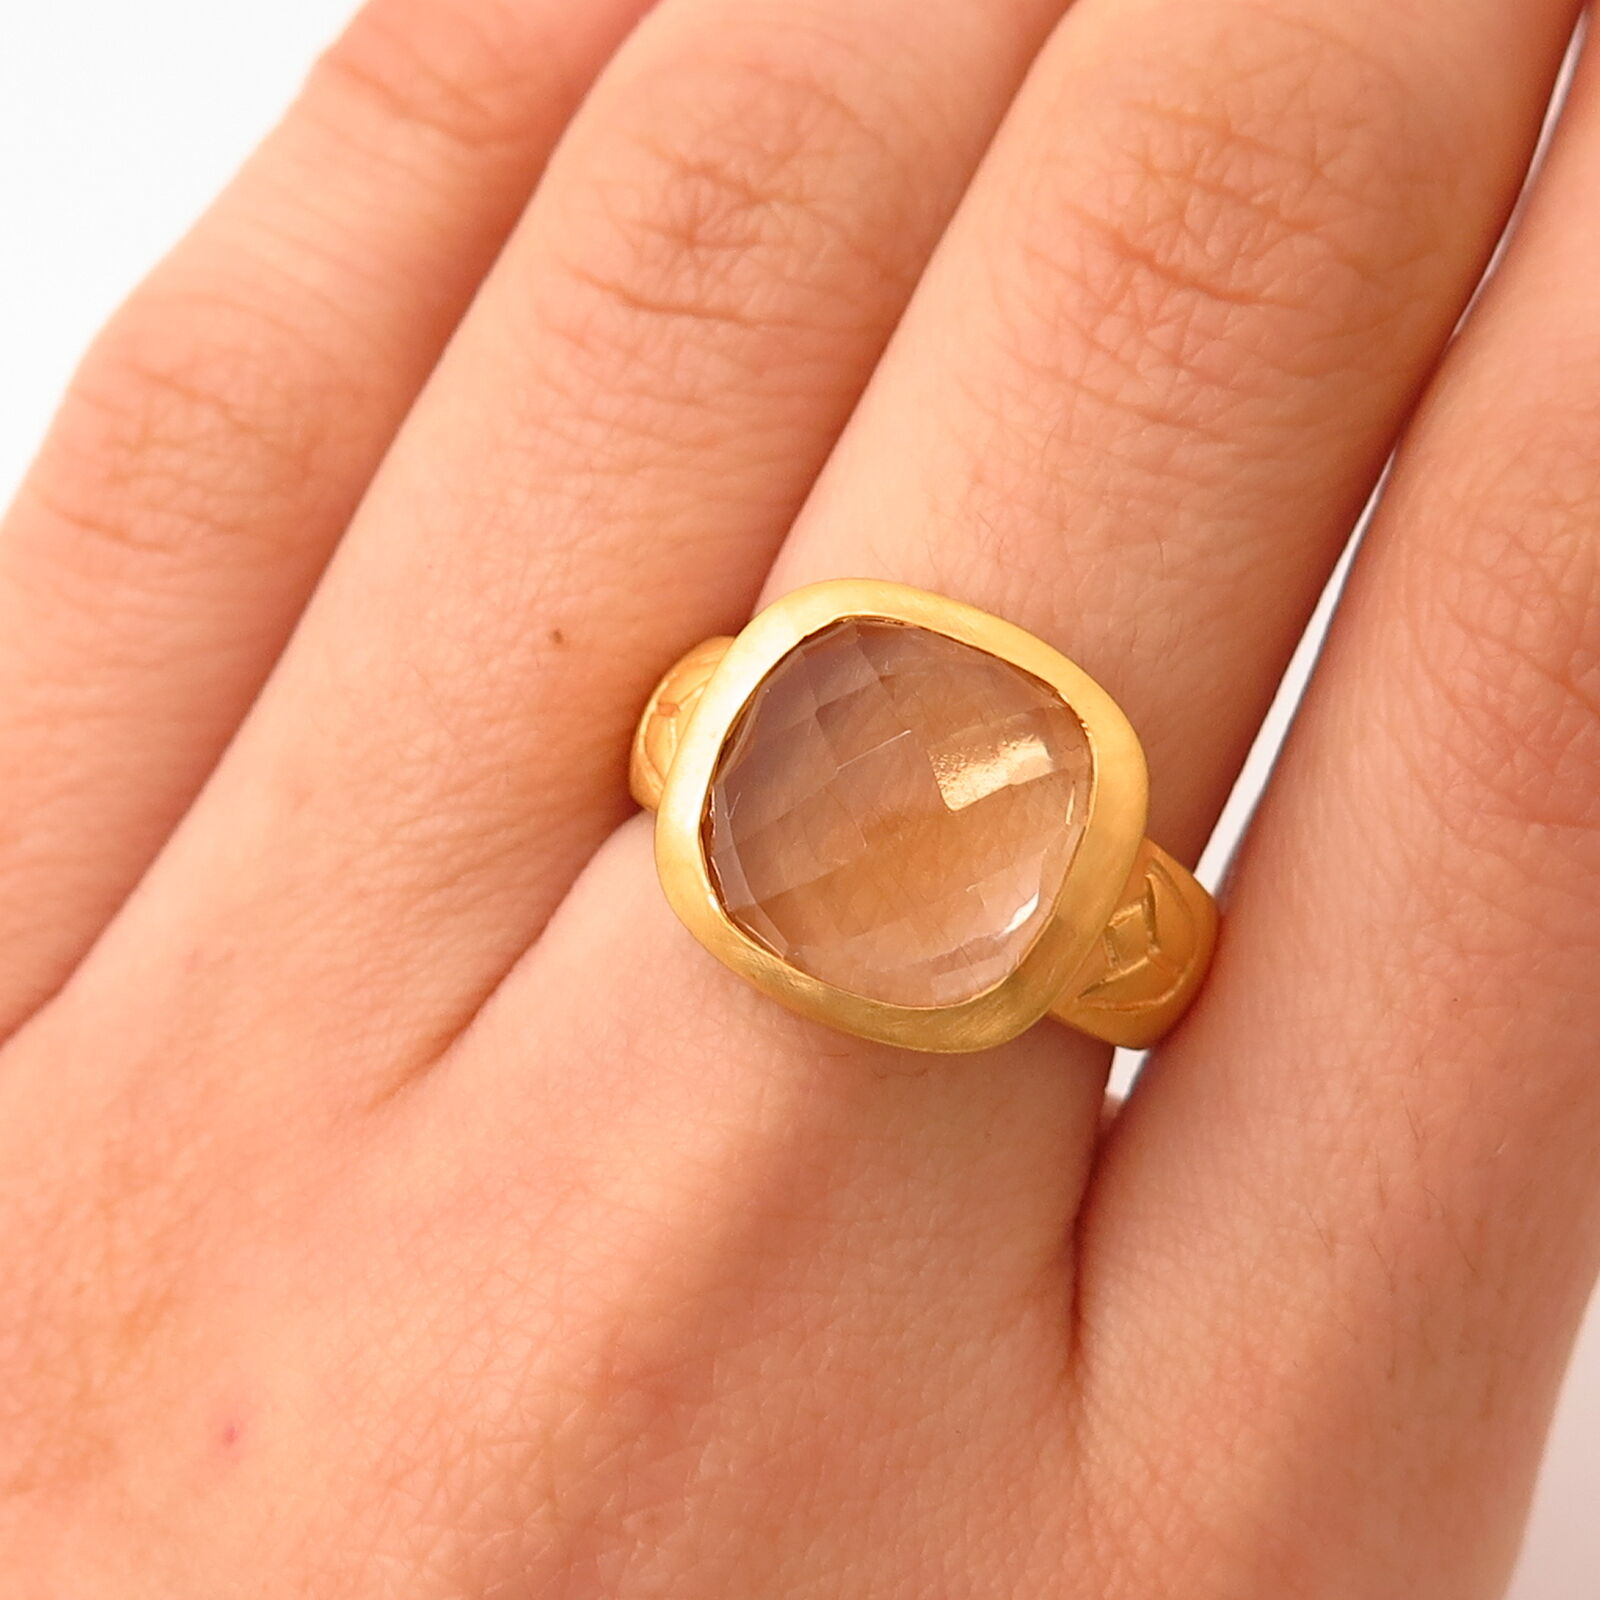 Satya Jewelry Real Clear Quartz Ring Size 7 1 4